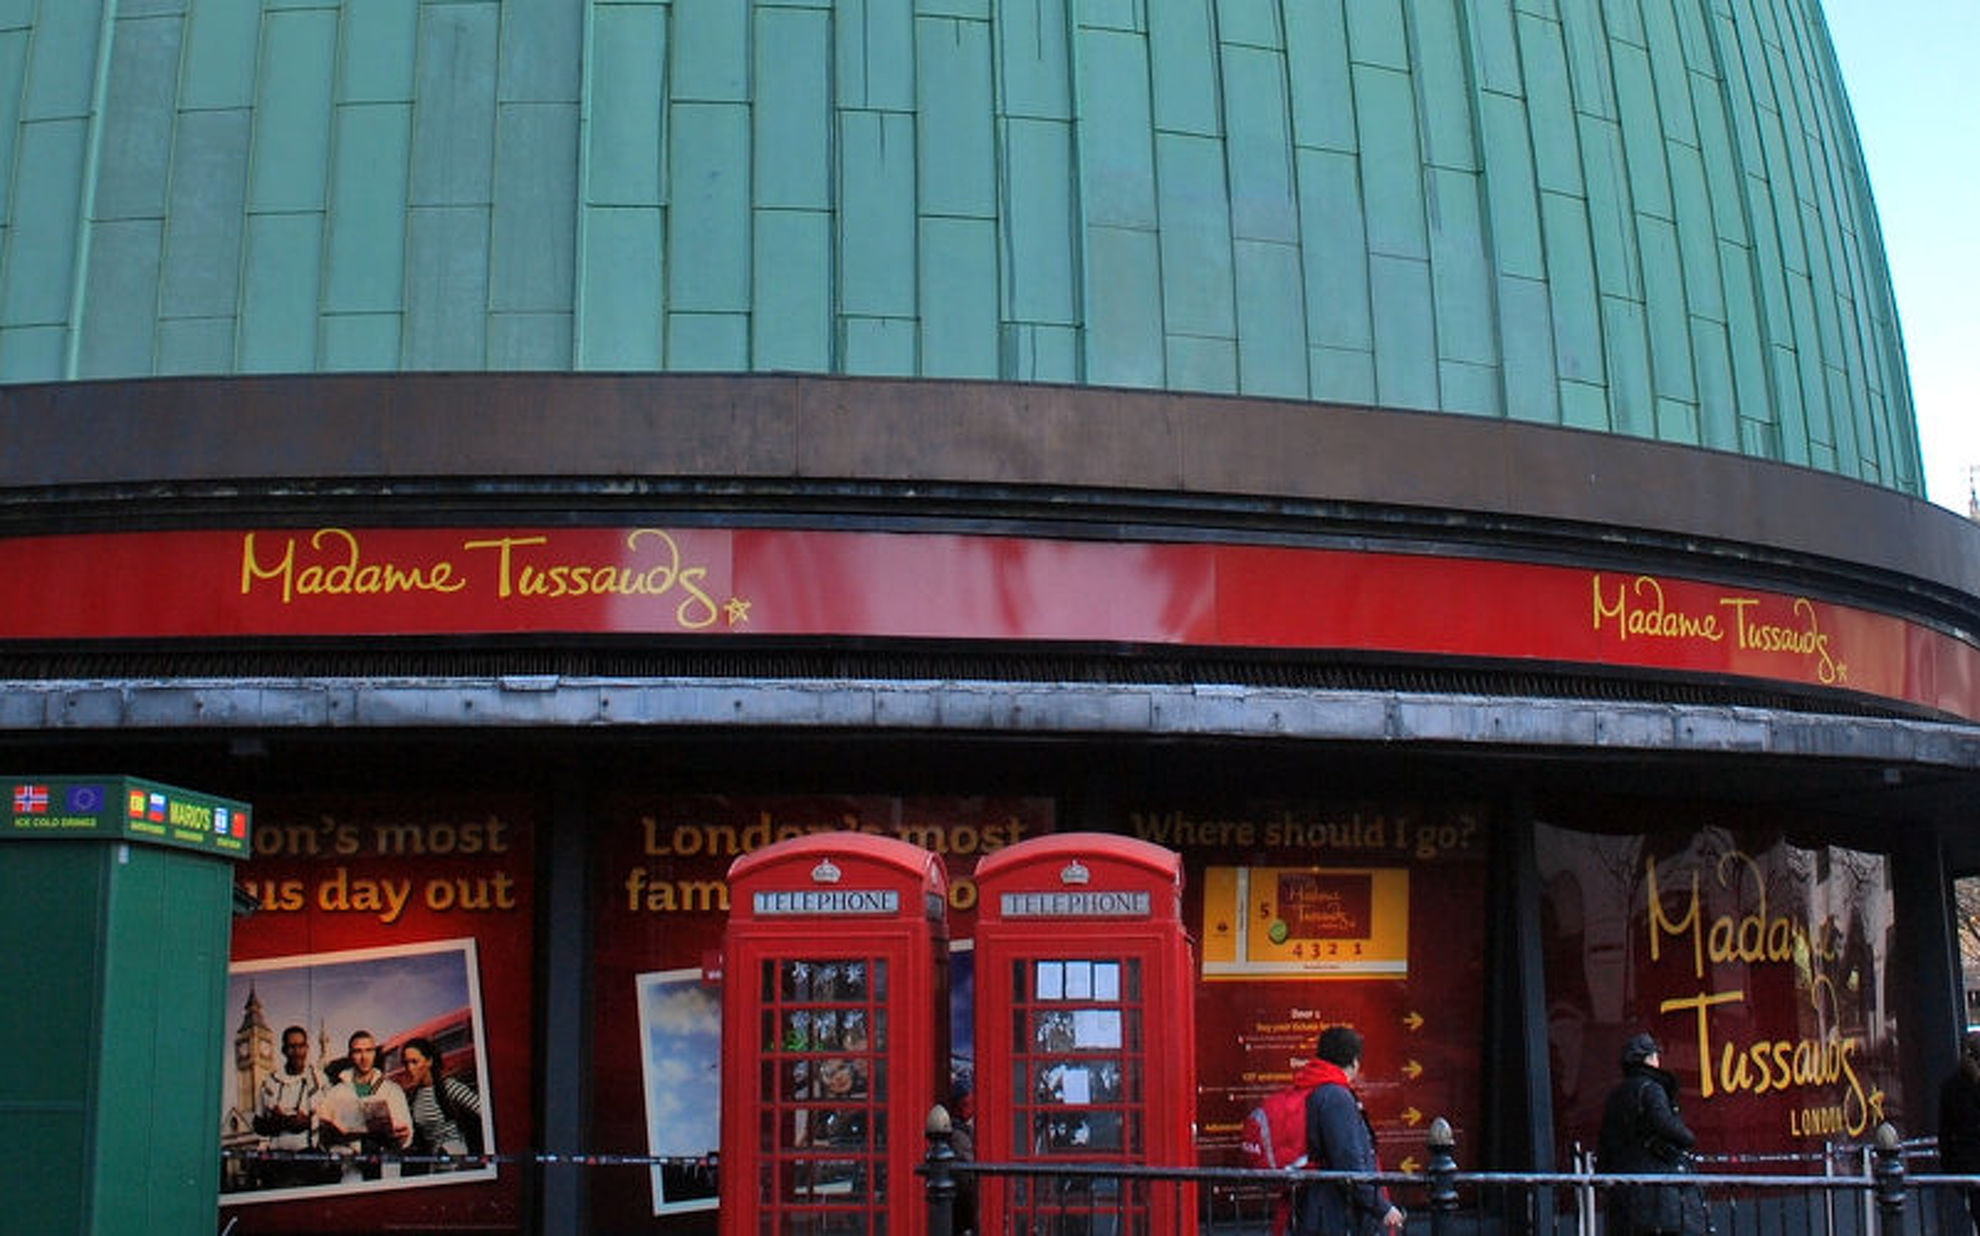 Explore Tussauds